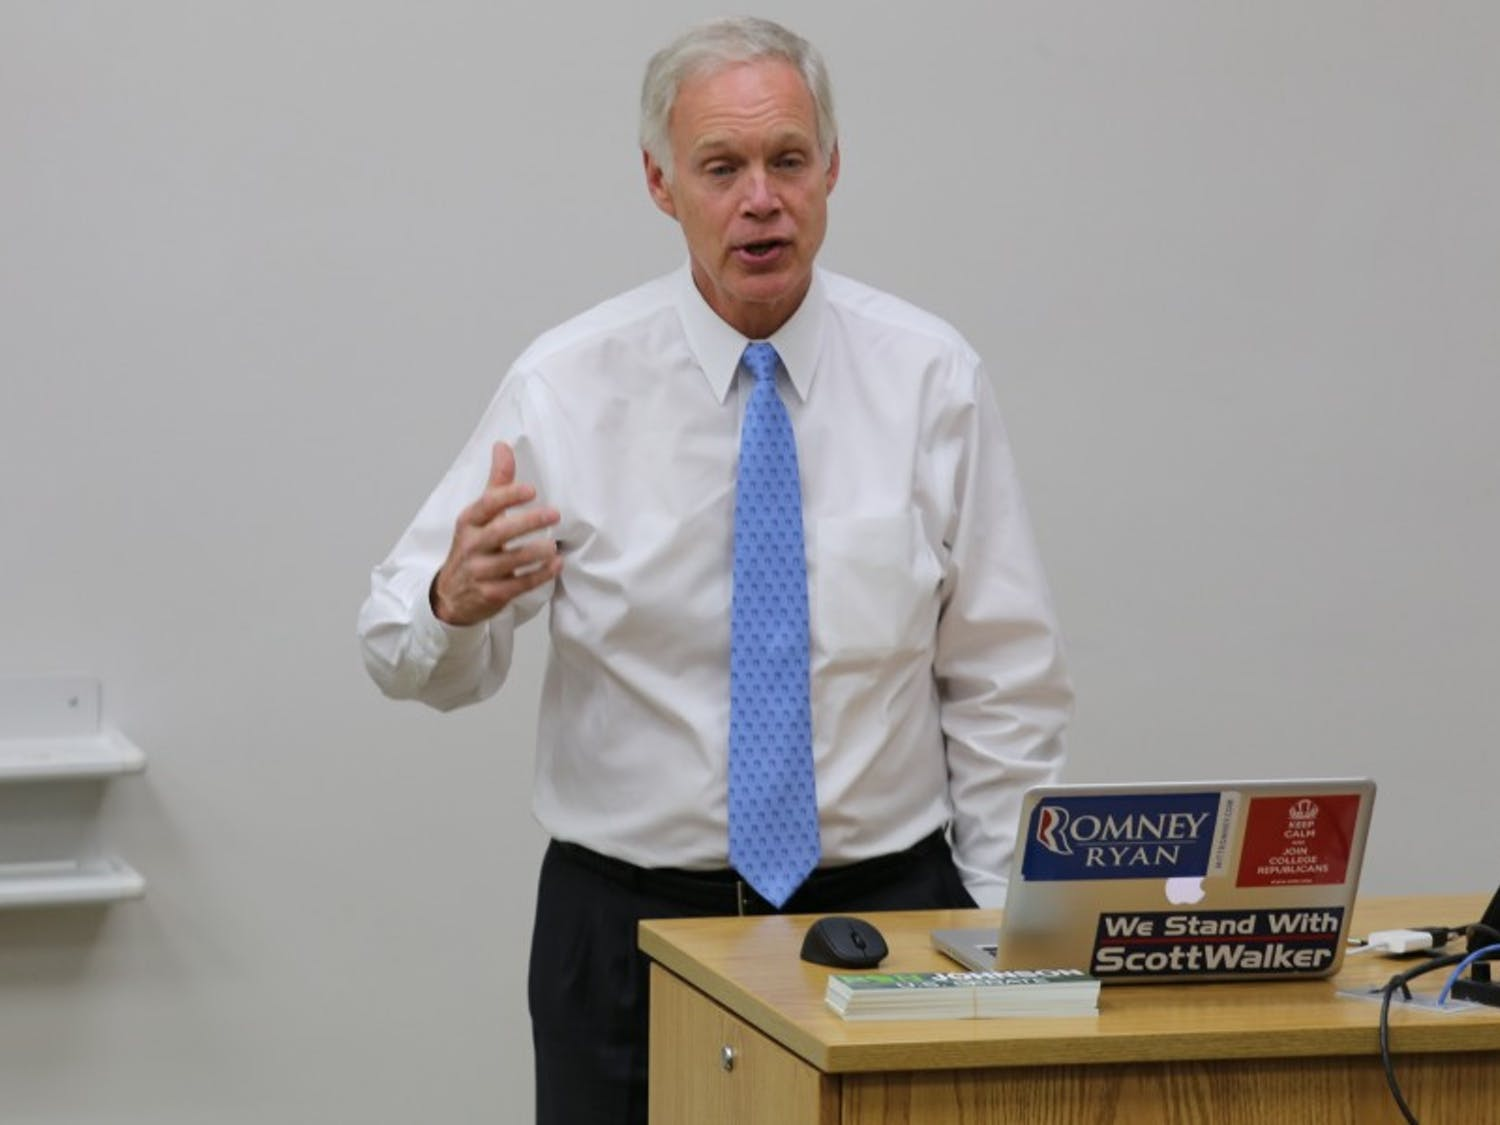 U.S. Sens. Ron Johnson, R-Wis., sent letters to the State Department requesting more action in response to the death of a 20-year-old Wisconsinite.